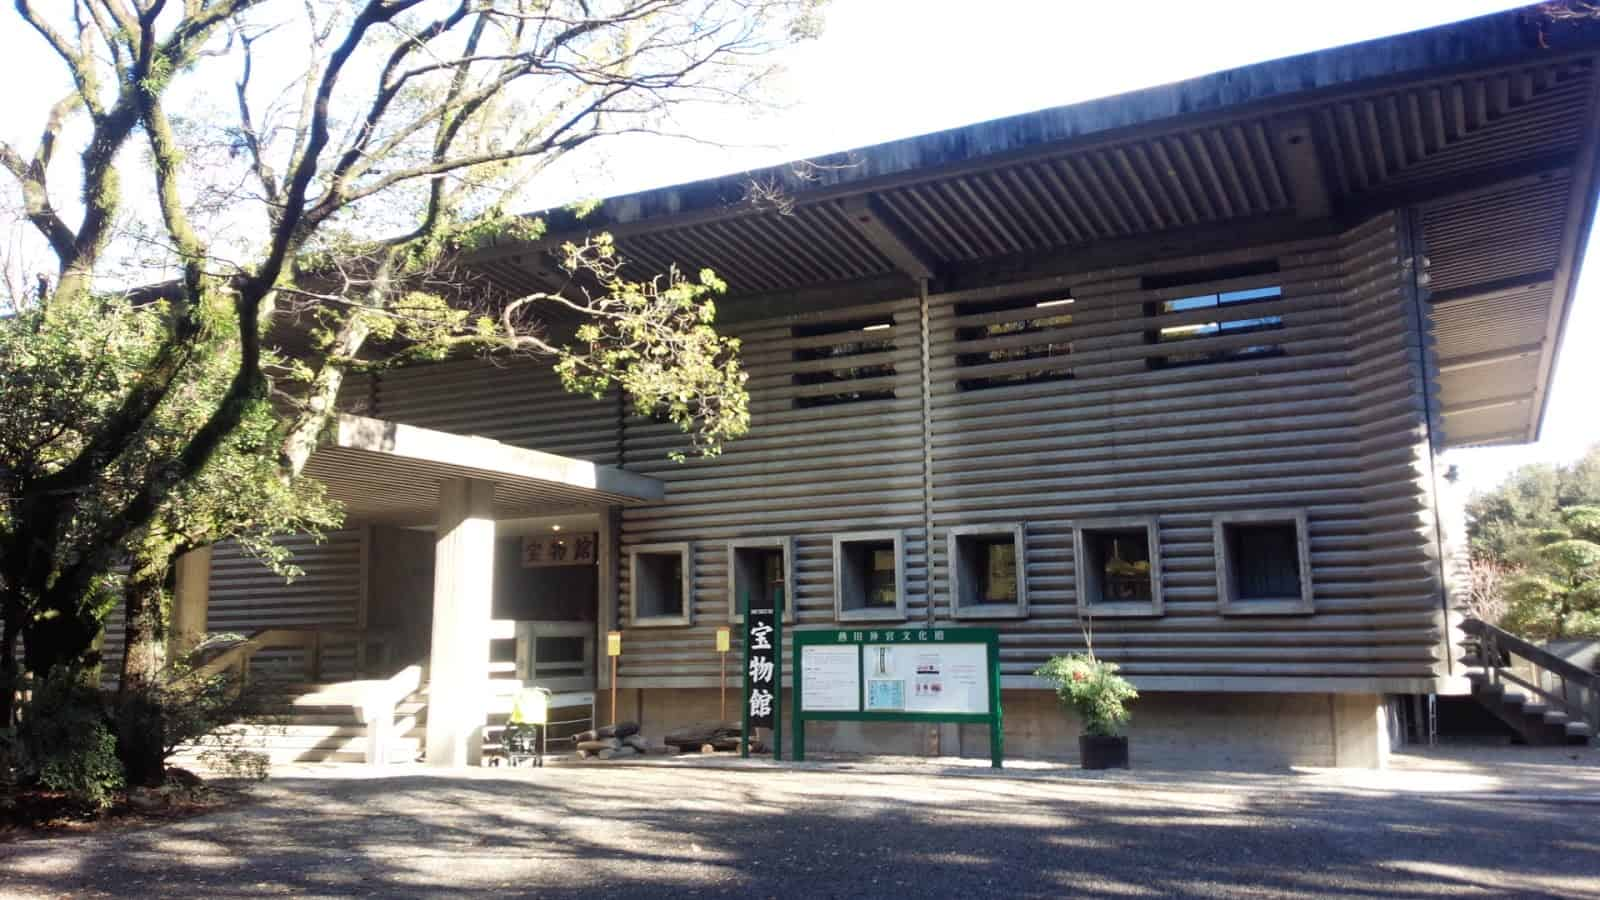 Atsuta Jingu Treasure House